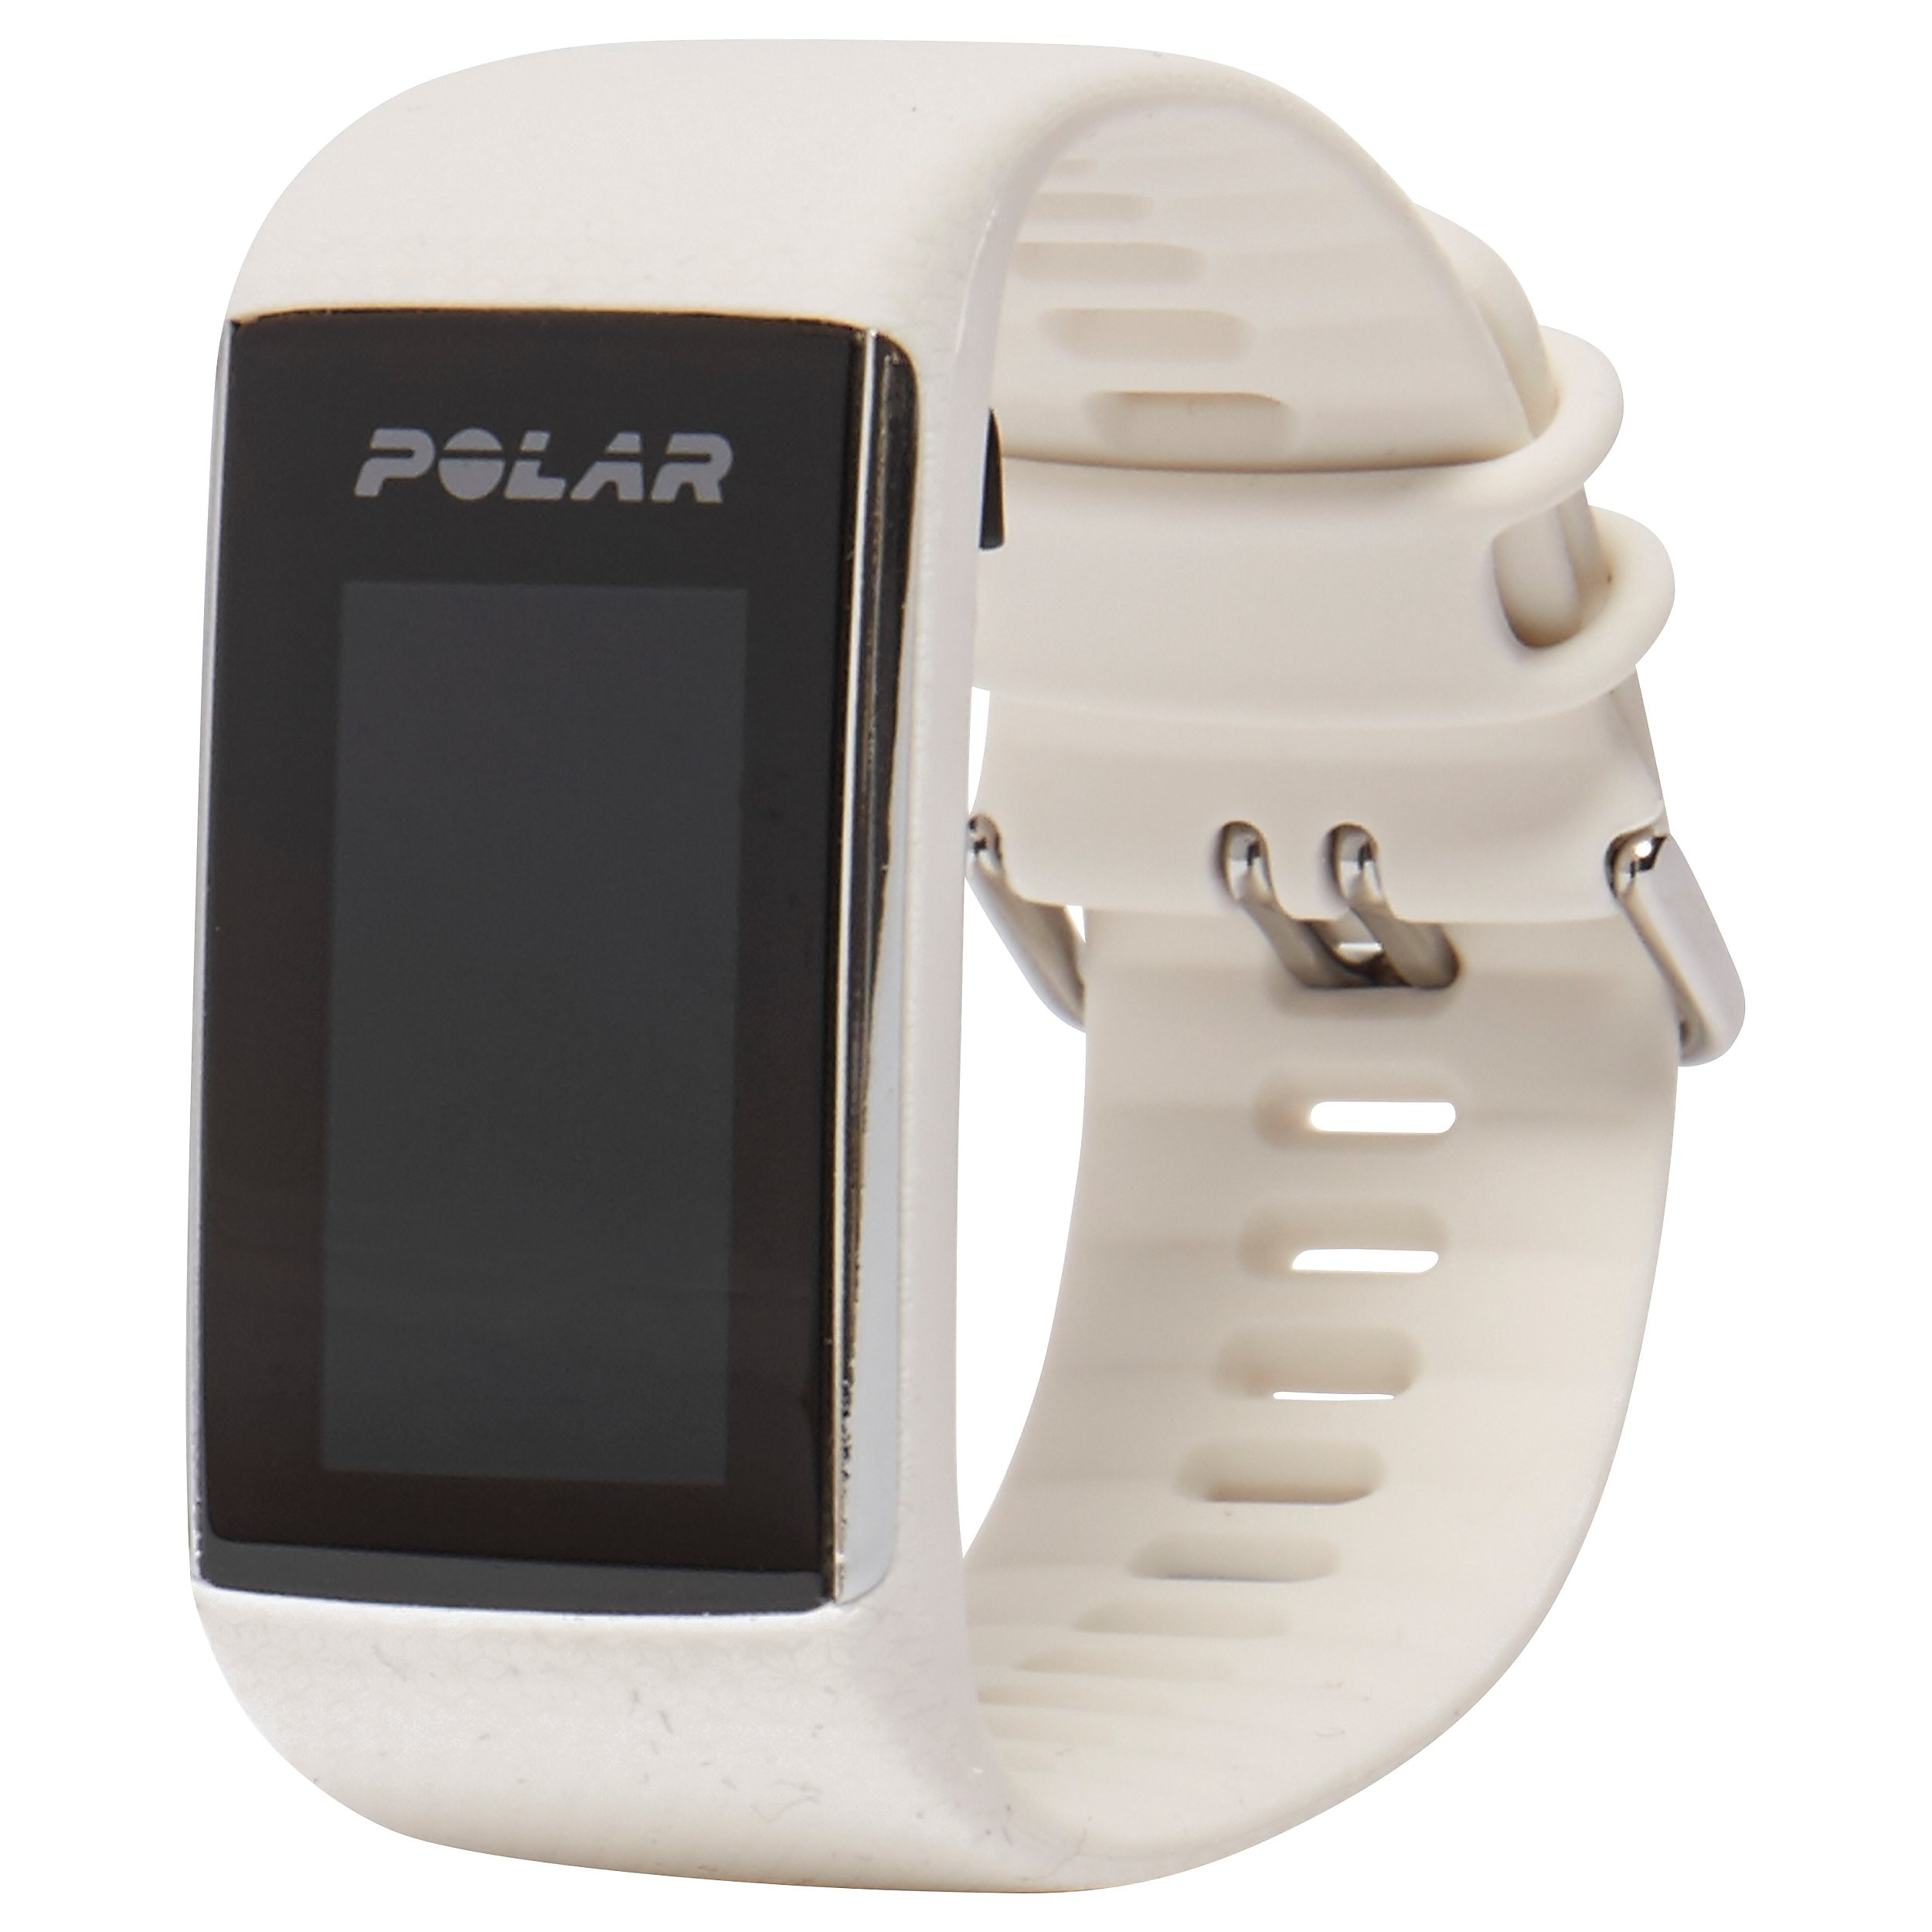 Polar Waterproof Heart Rate Monitor